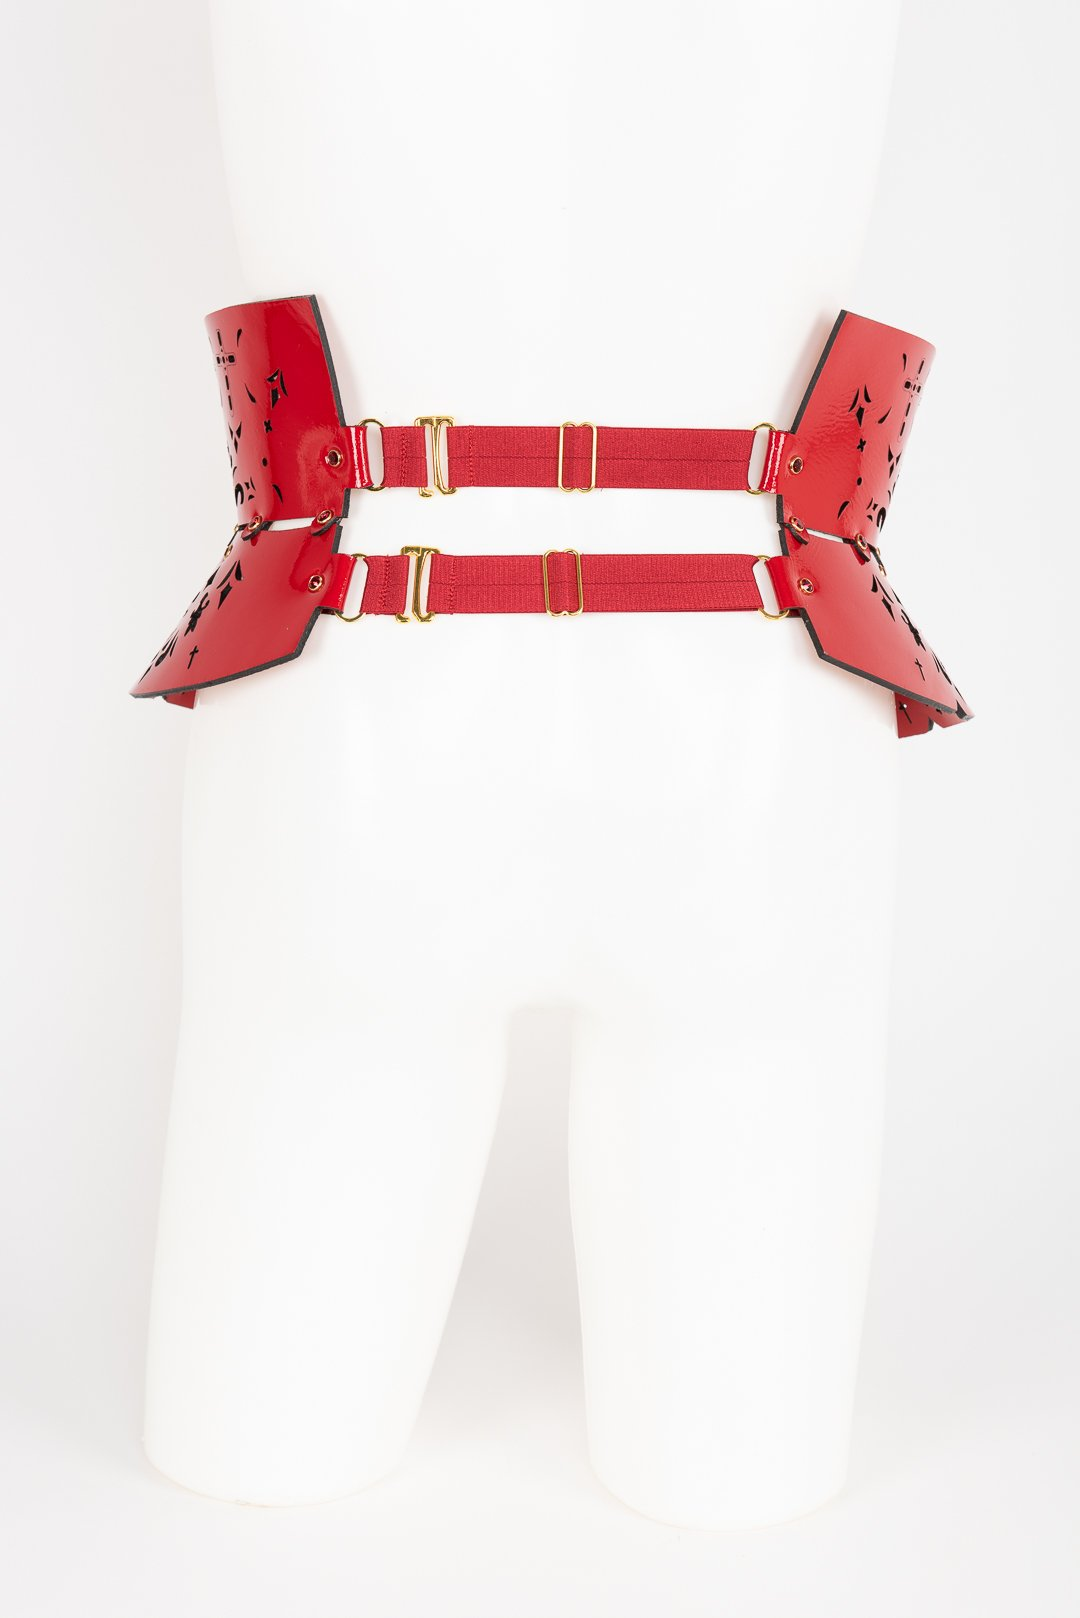 Luxury Patent Leather Belt with Crystal Rivets Buy Online at Fraulein Kink